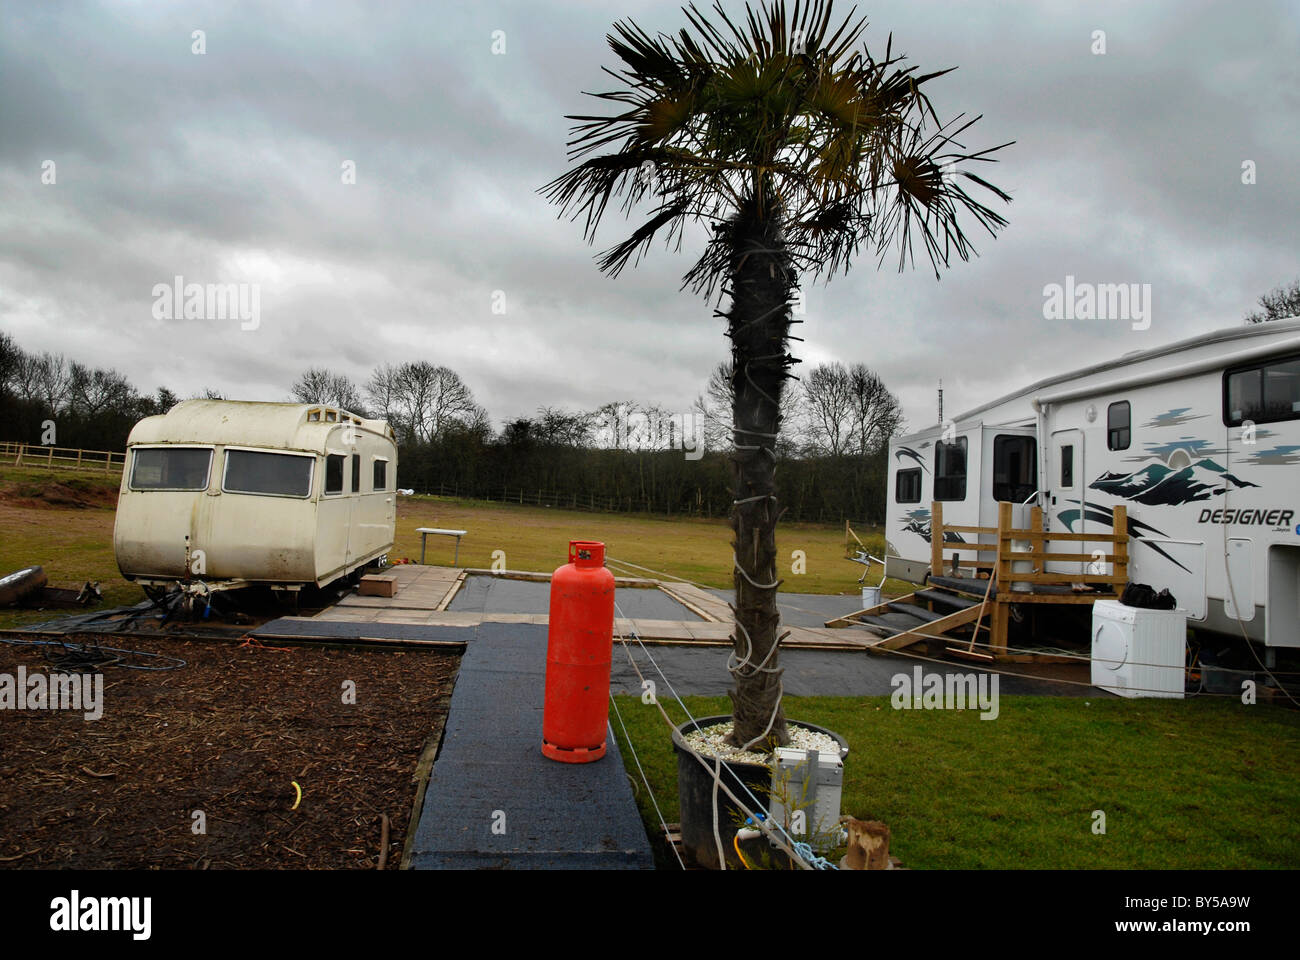 Traveller caravan and potted palm tree in a traveller site at Meriden UK. - Stock Image